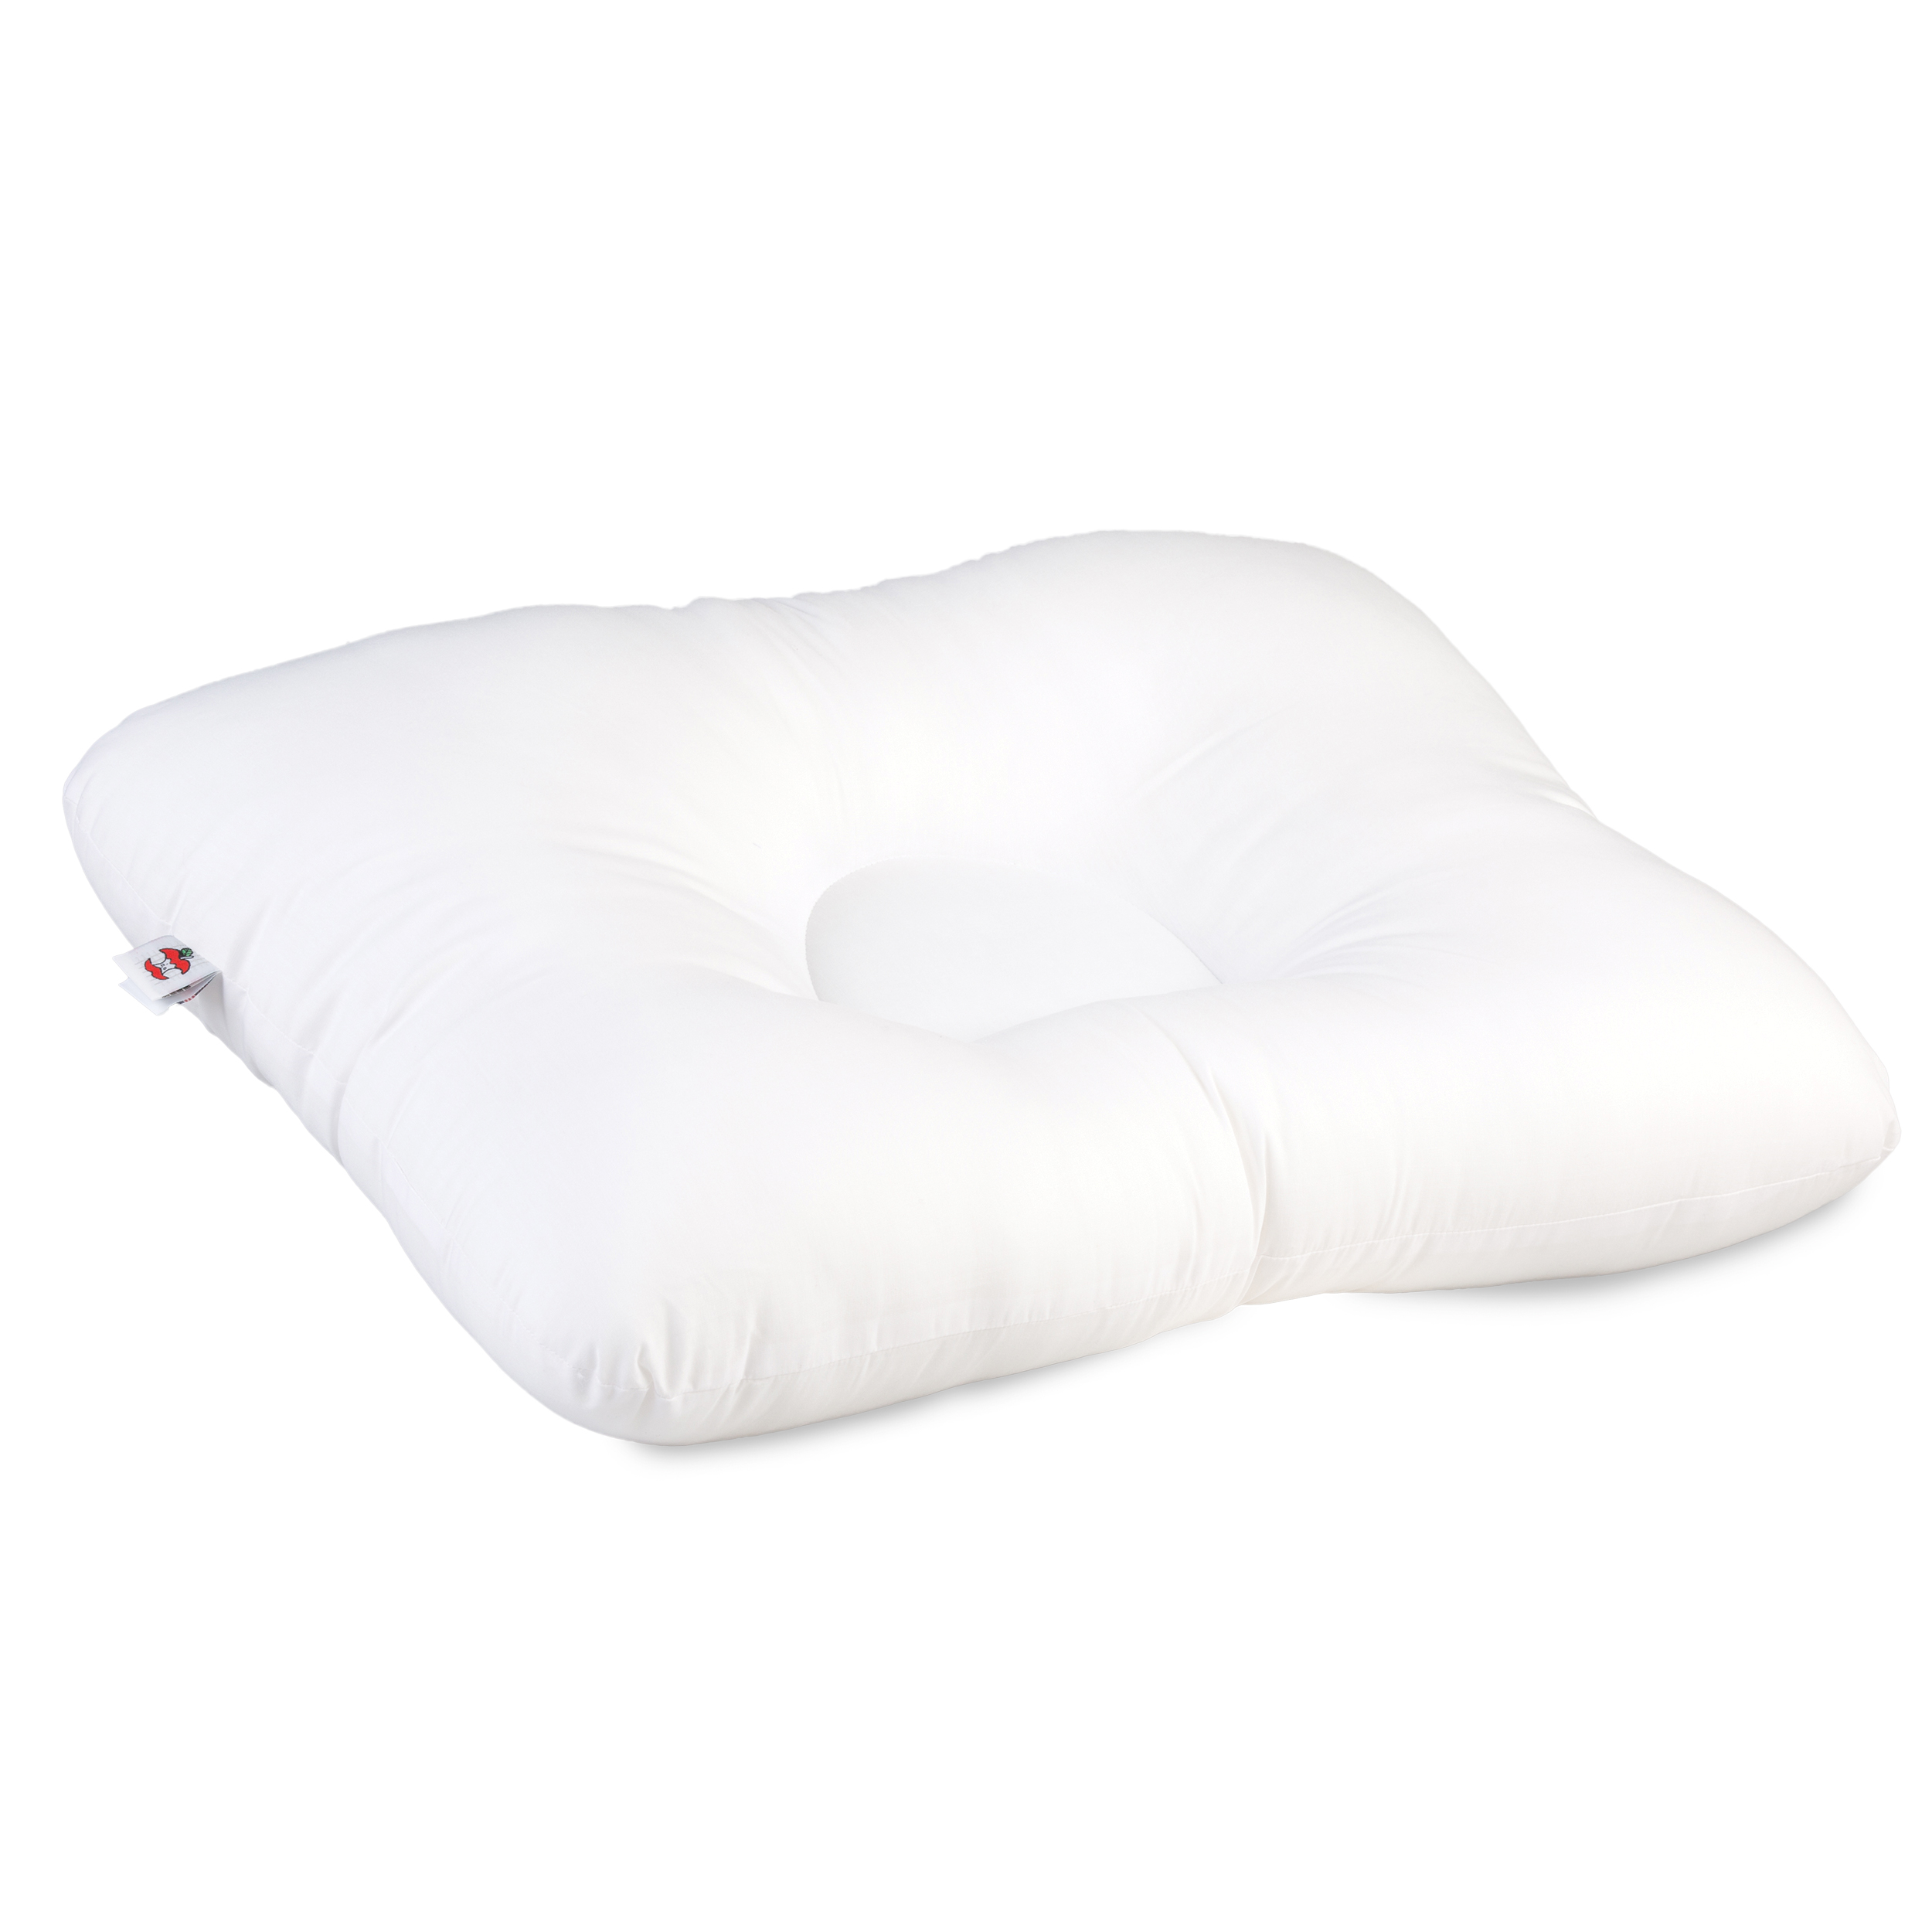 Core-Products-D-Core-Cervical-Support-Pillow-NEW-Manufacturer-Direct thumbnail 4